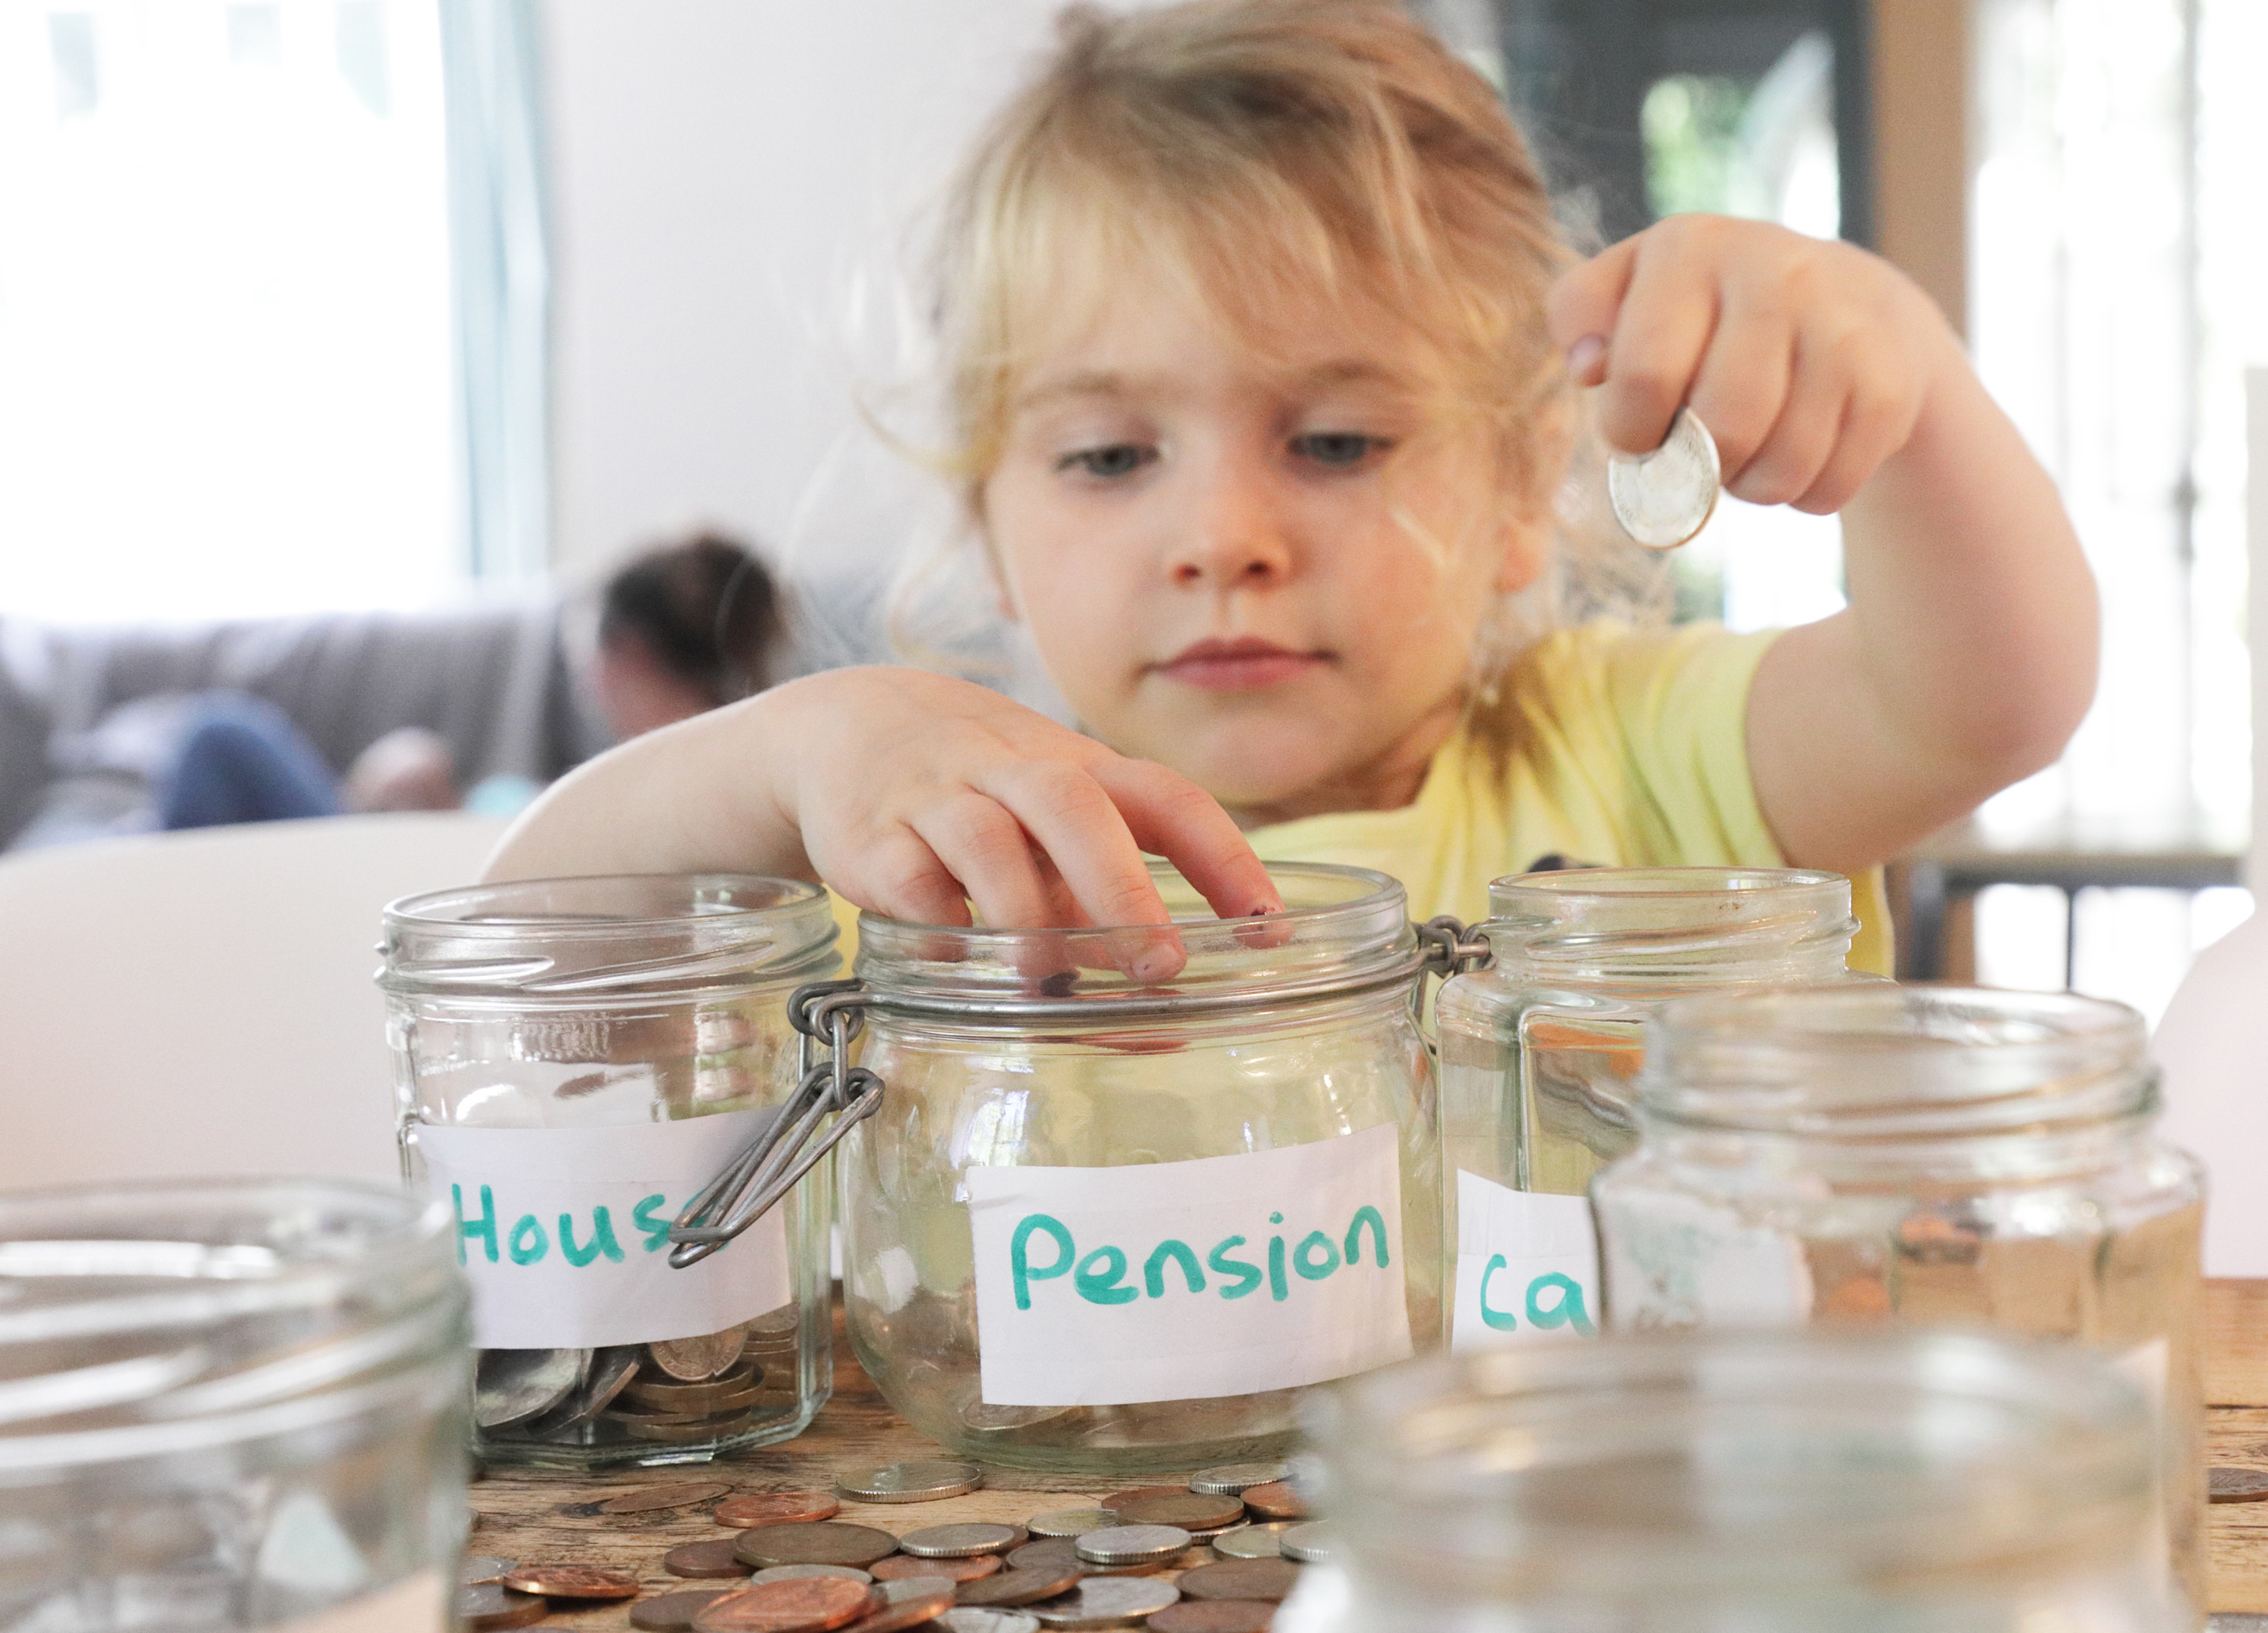 A young kid filling jars with money